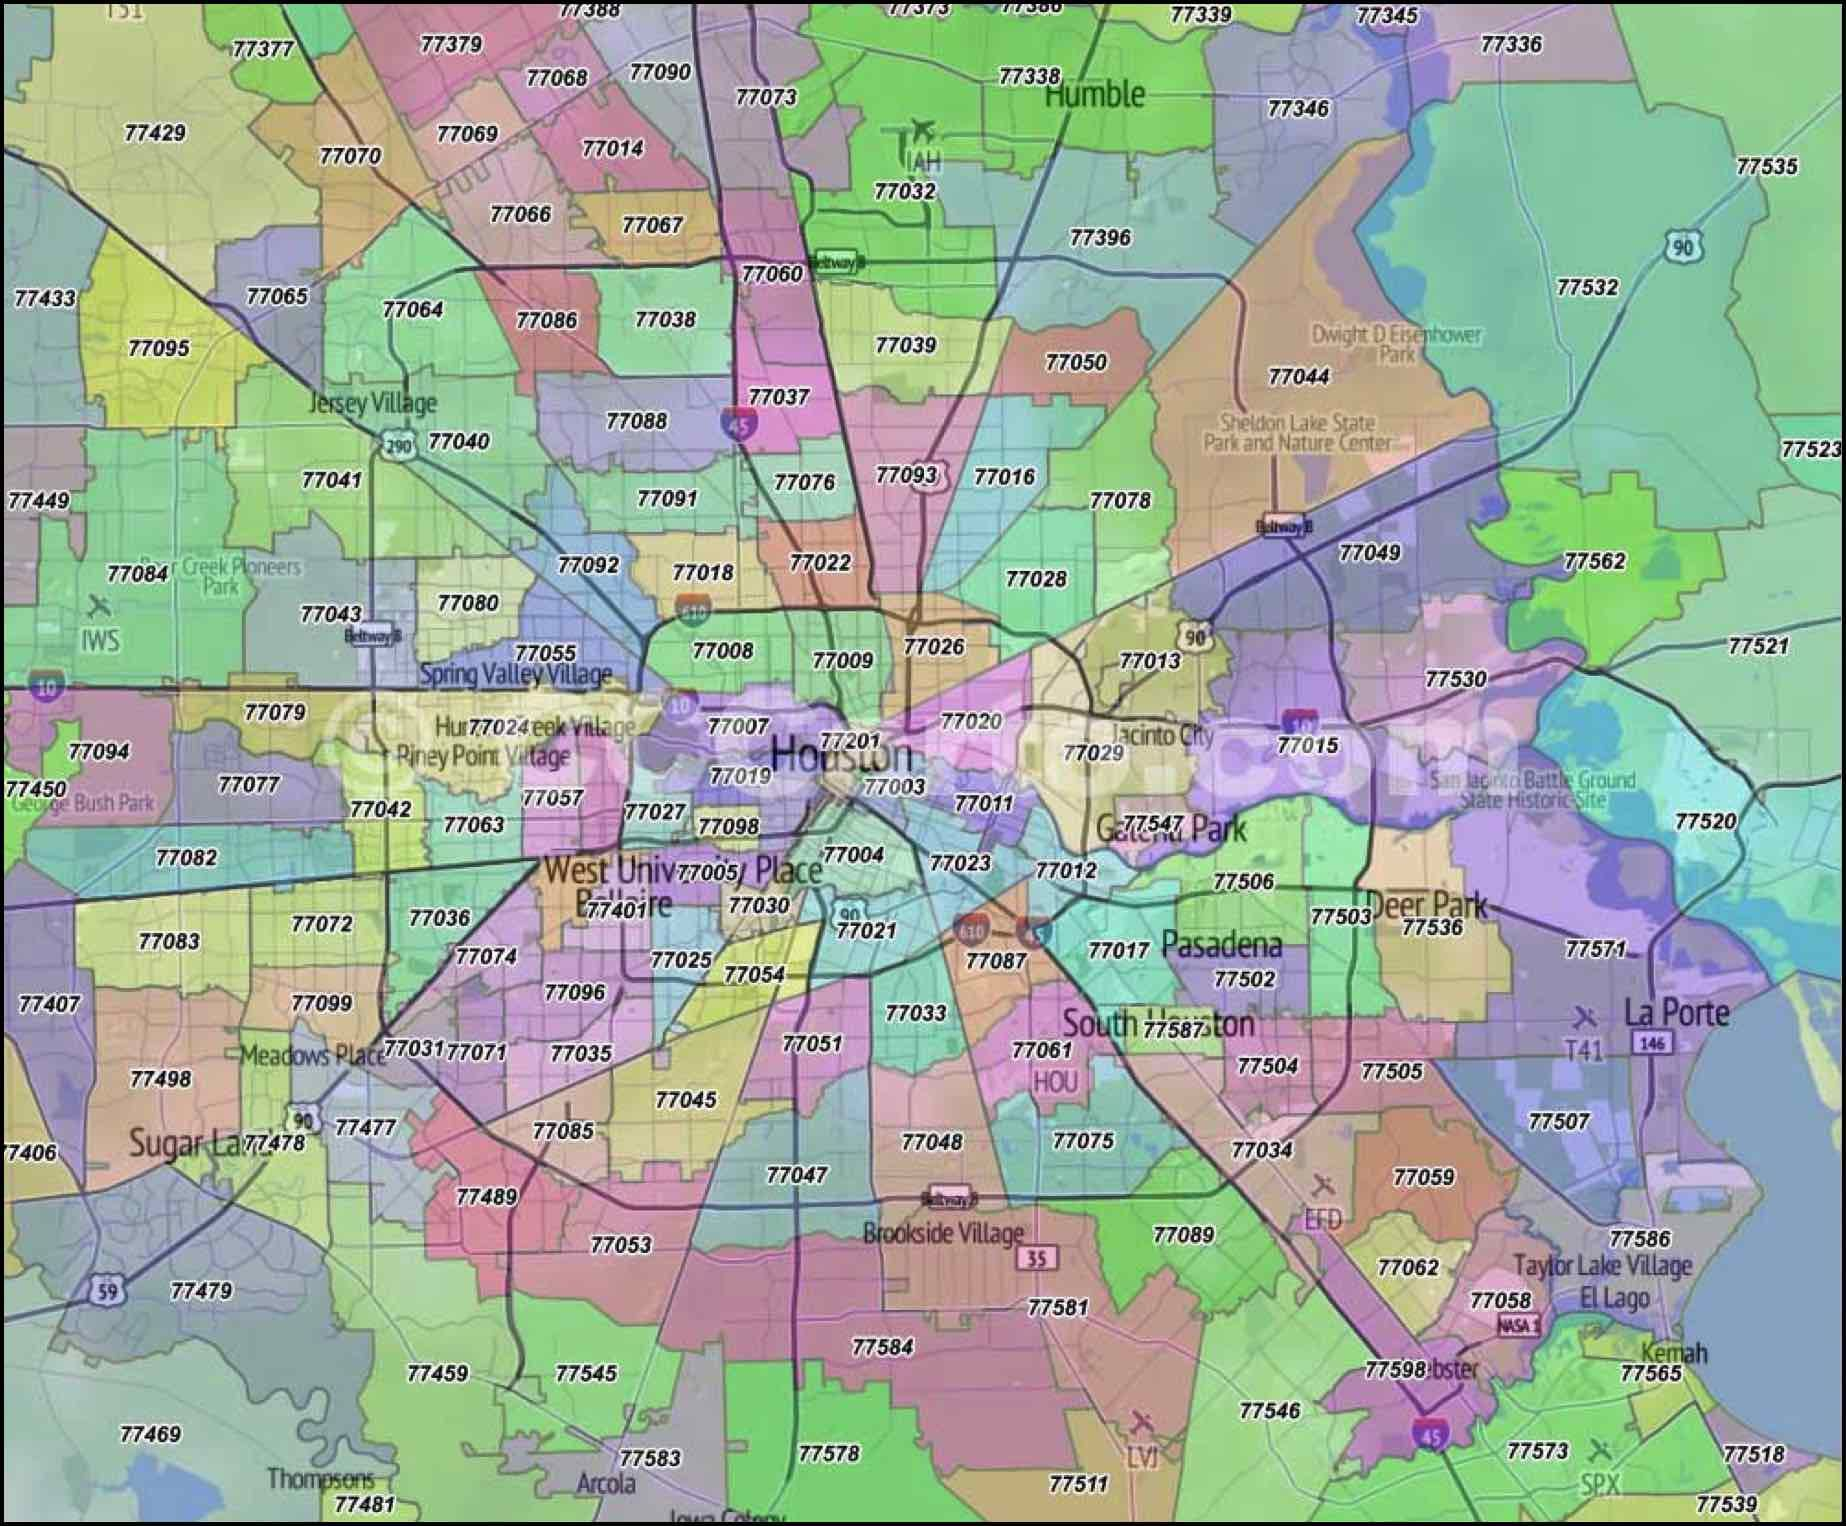 Houston Map Pdf Houston Zip Code Map | Houston Zip Code Map in 2019 | Zip code map